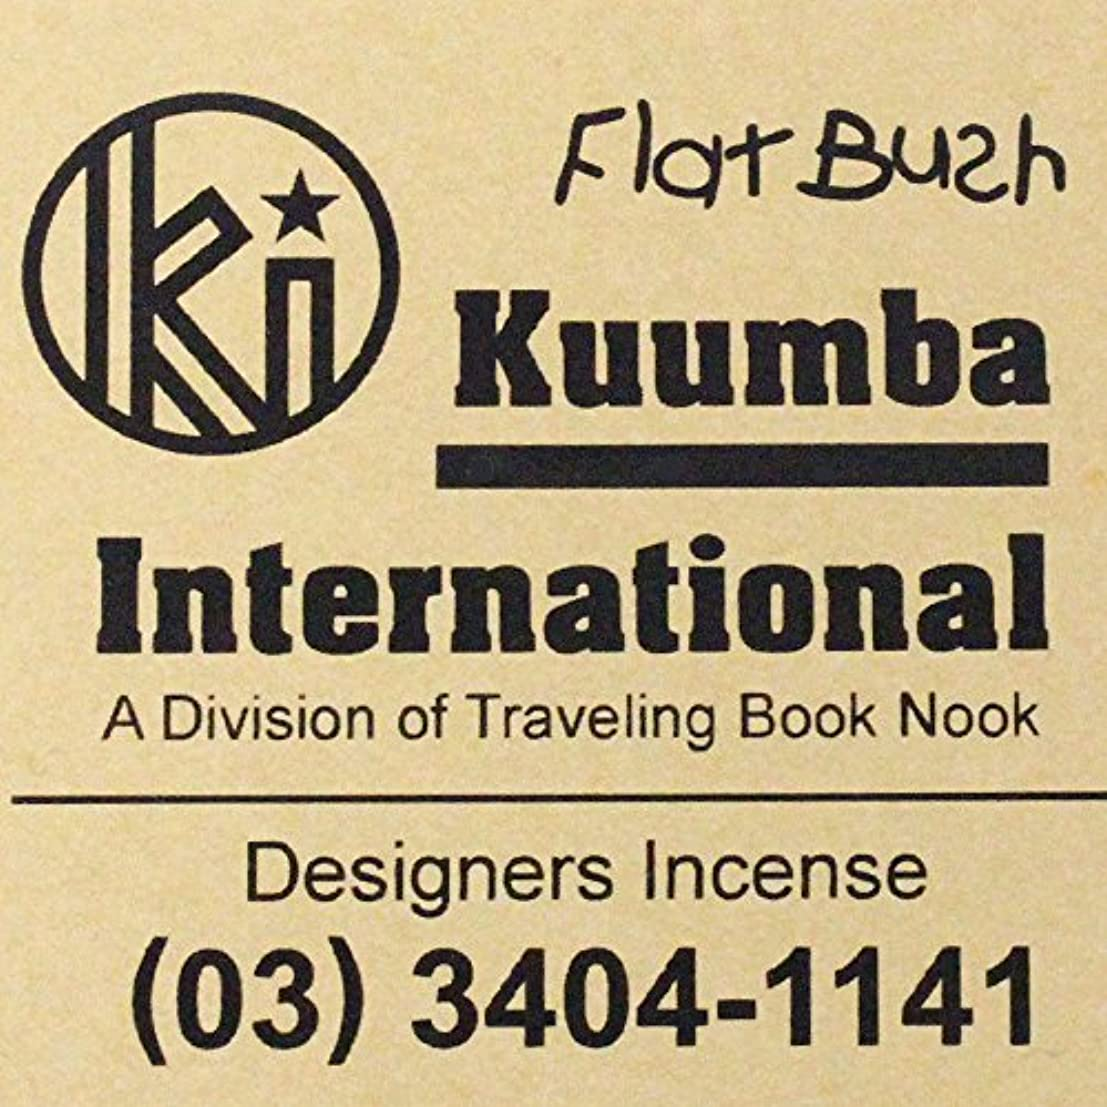 酸度リーズ骨髄(クンバ) KUUMBA『incense』(Flat Bush) (Regular size)